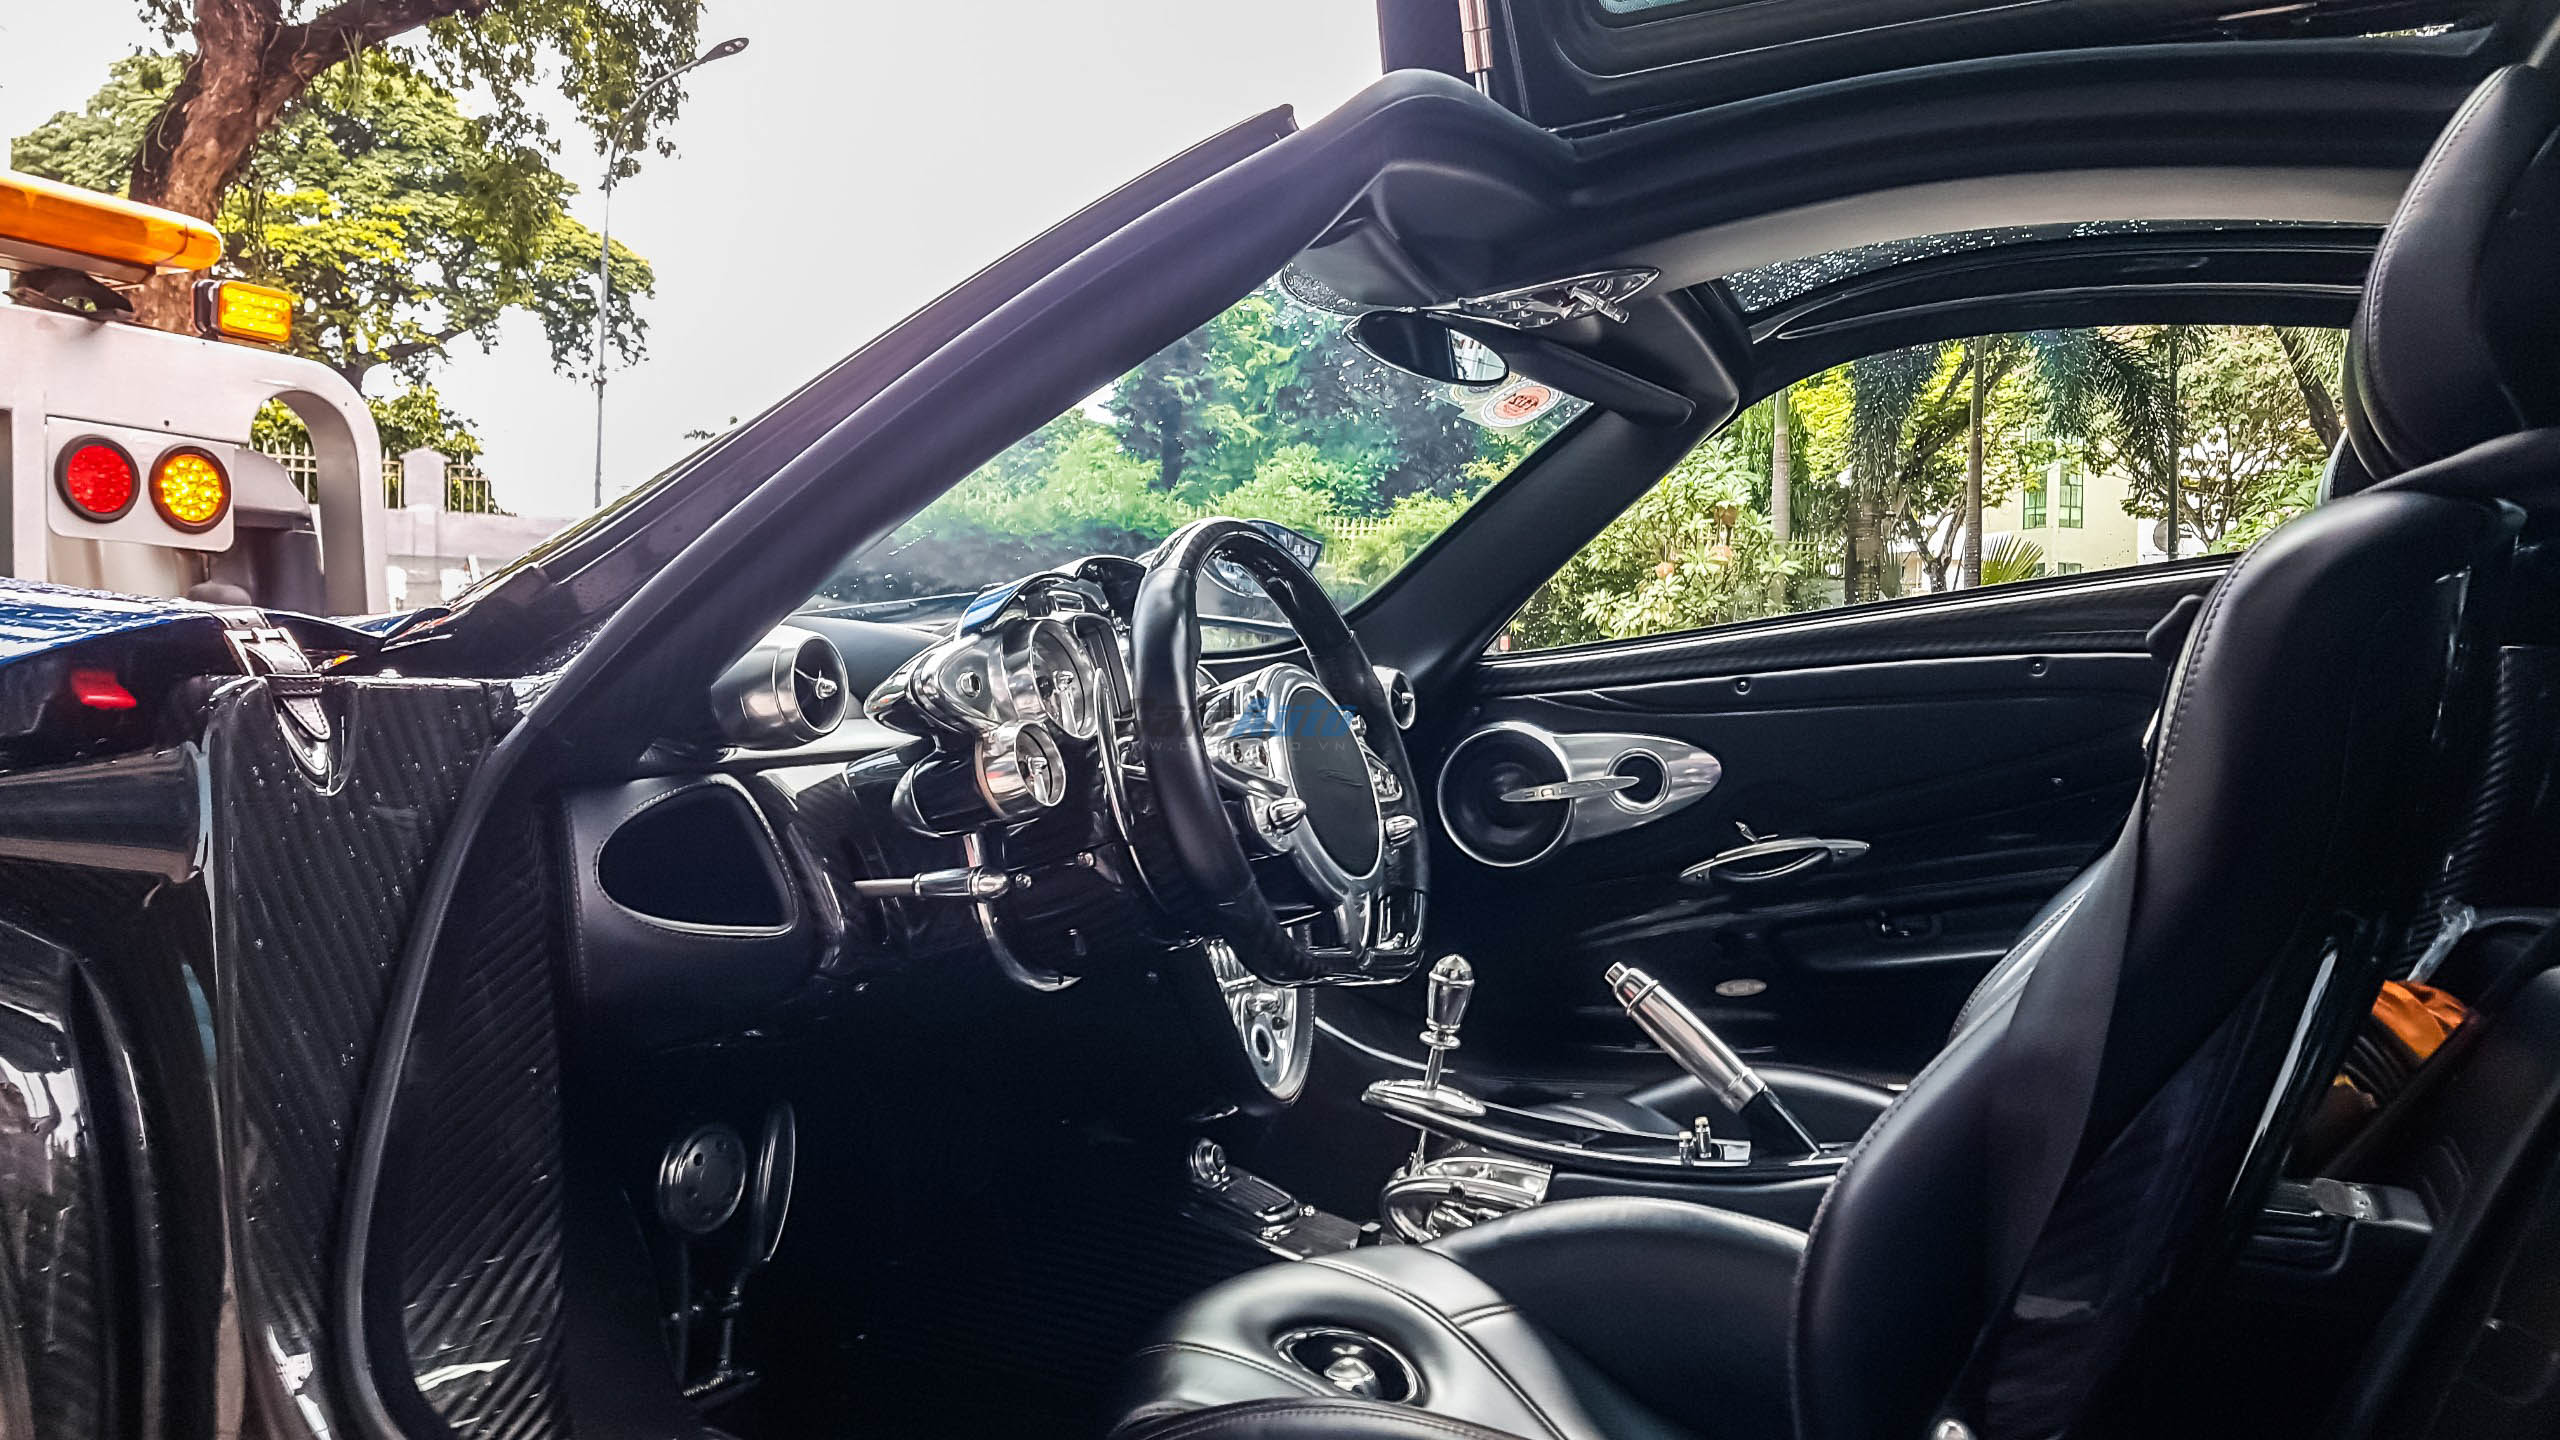 paganihuayra-cafeautovn-26